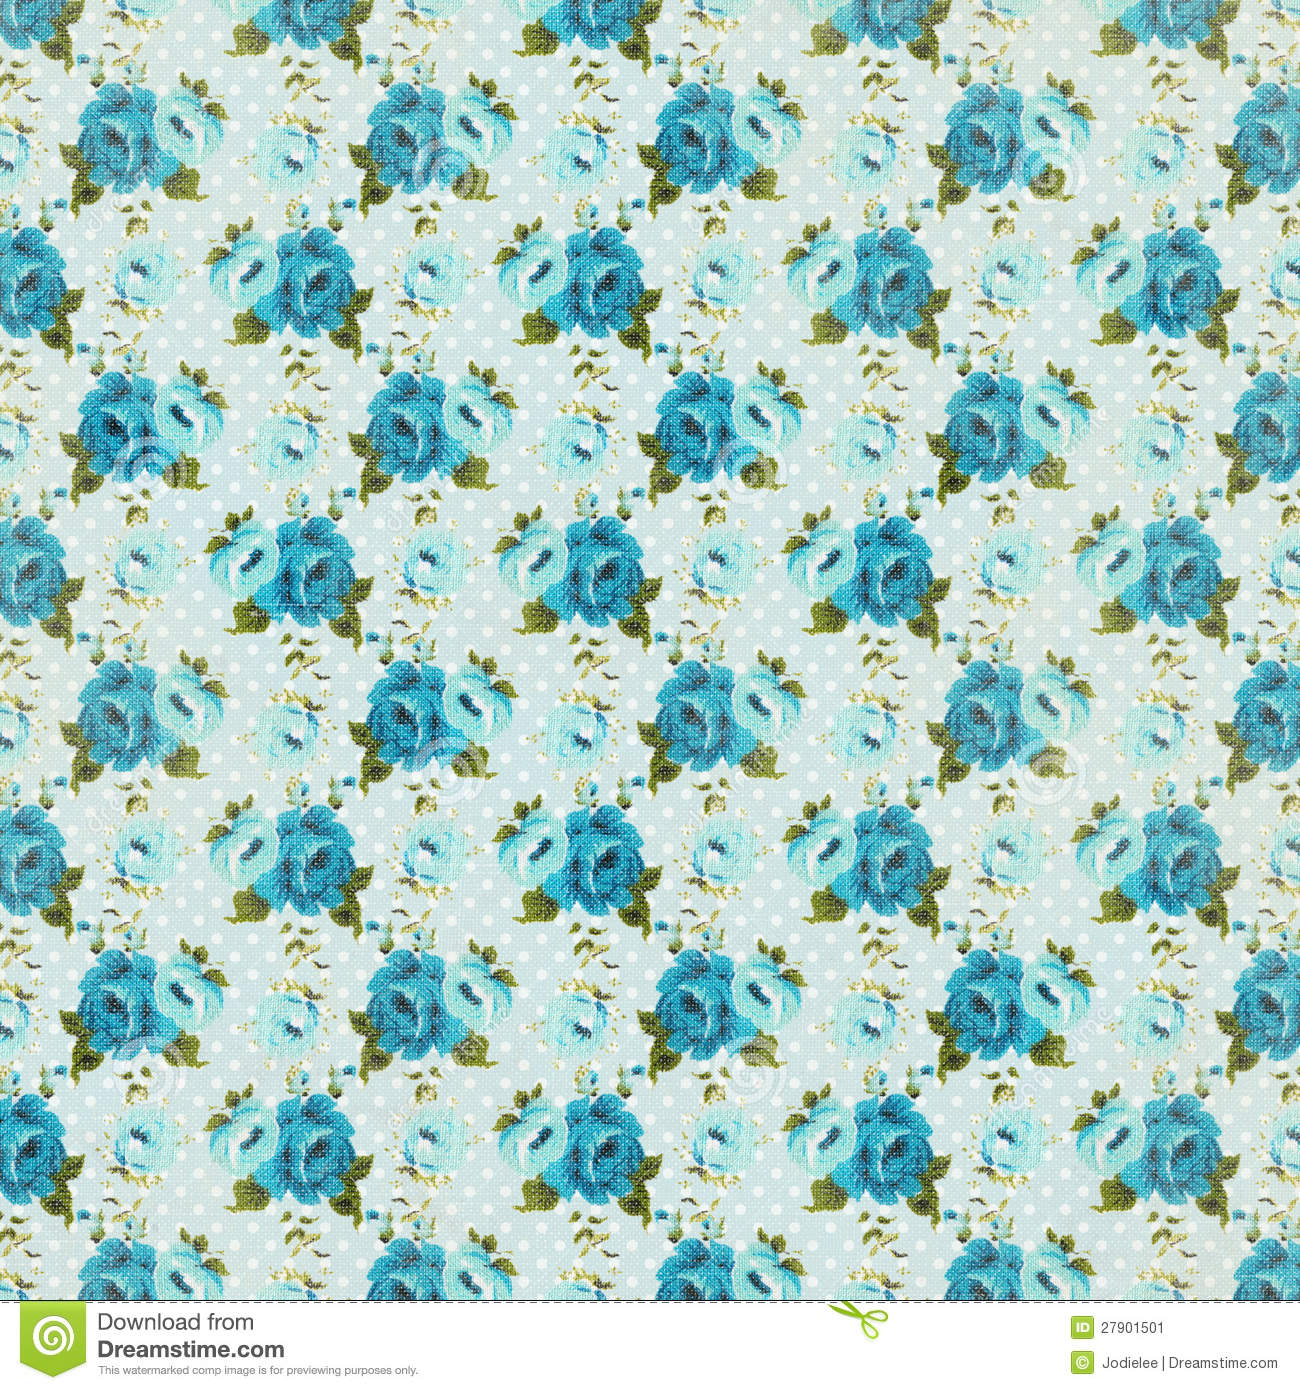 Shabby blue vintage floral rose background repeat